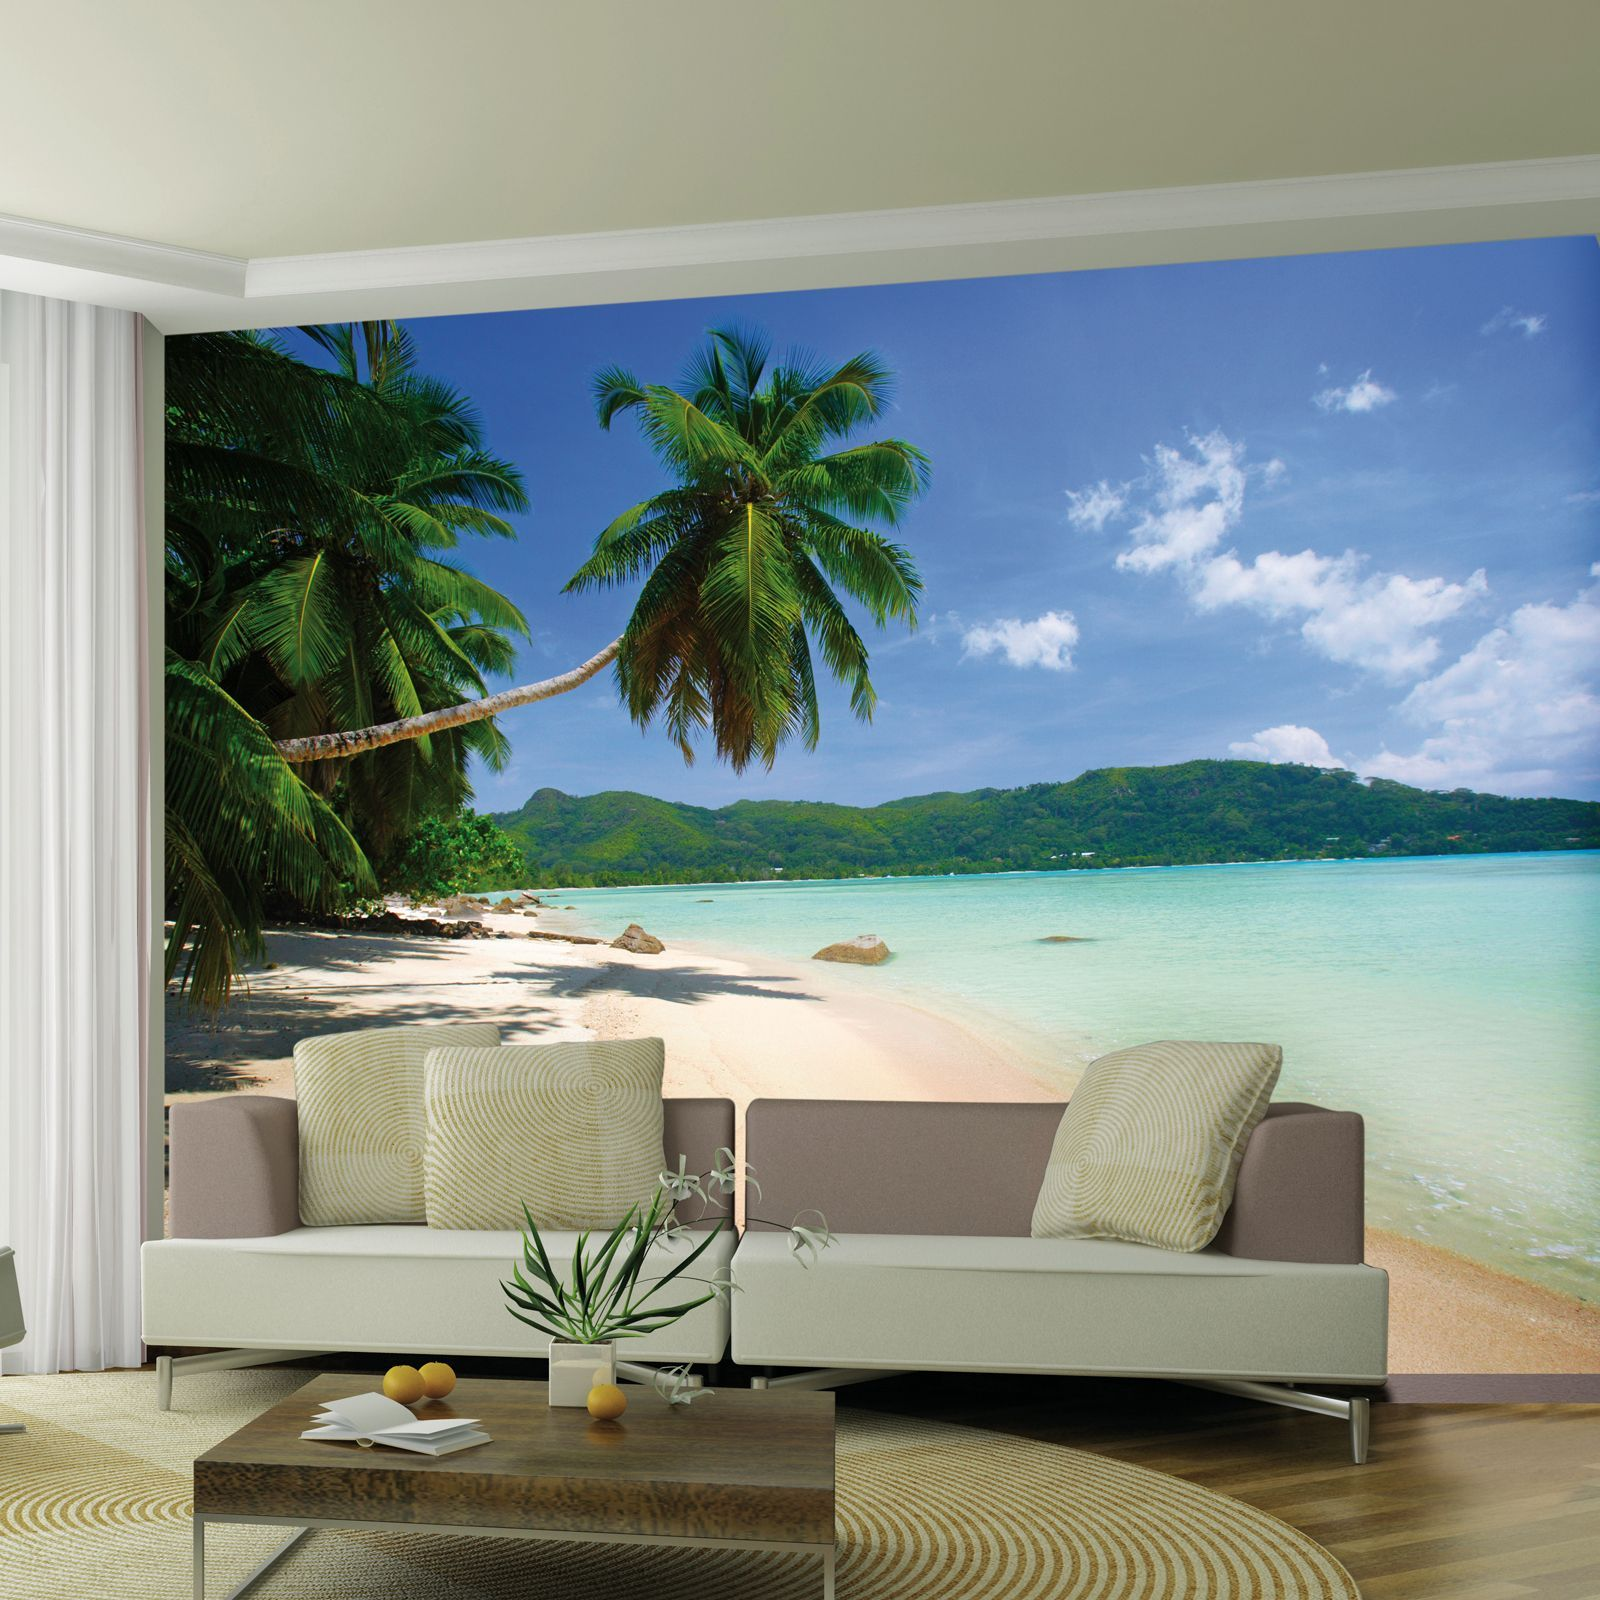 Large wallpaper feature wall murals landscapes for Bathroom wall mural